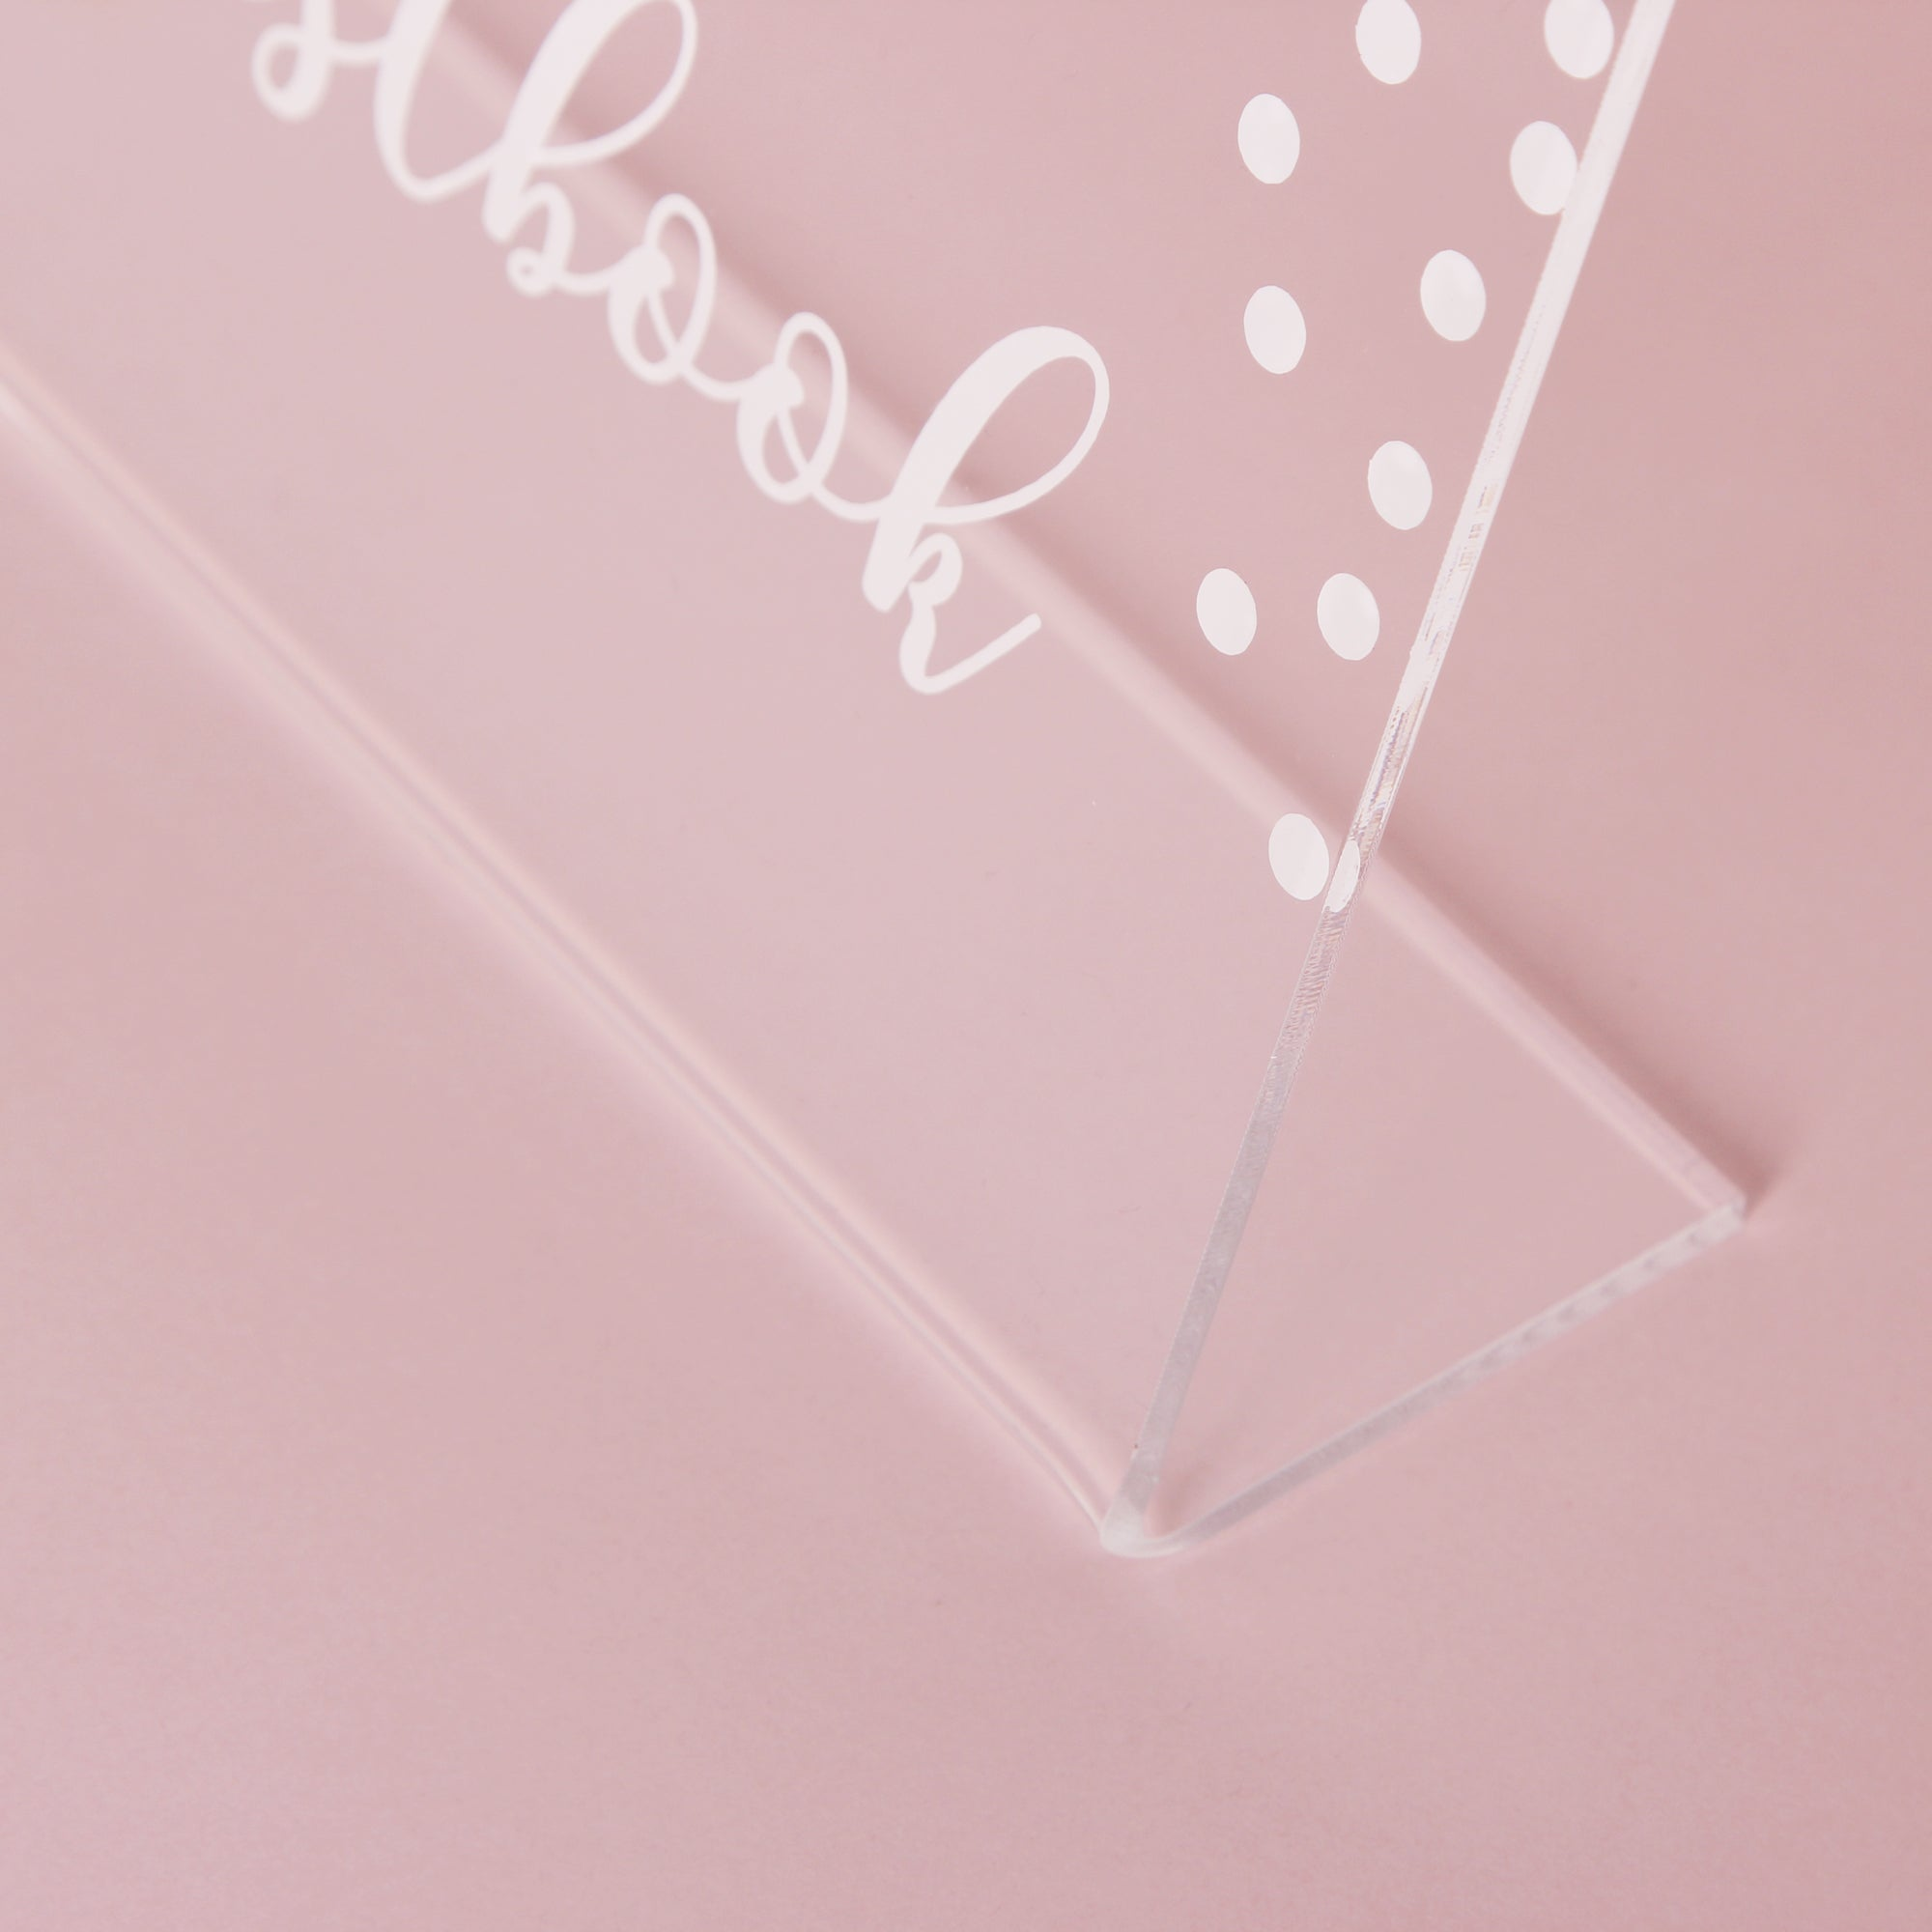 Acrylic Wedding Sign White with Dots- Guest book Glass Sign - Transperant Photo Guestbook Sign - Instax Photo Glass Sign - by Liumy - Liumy